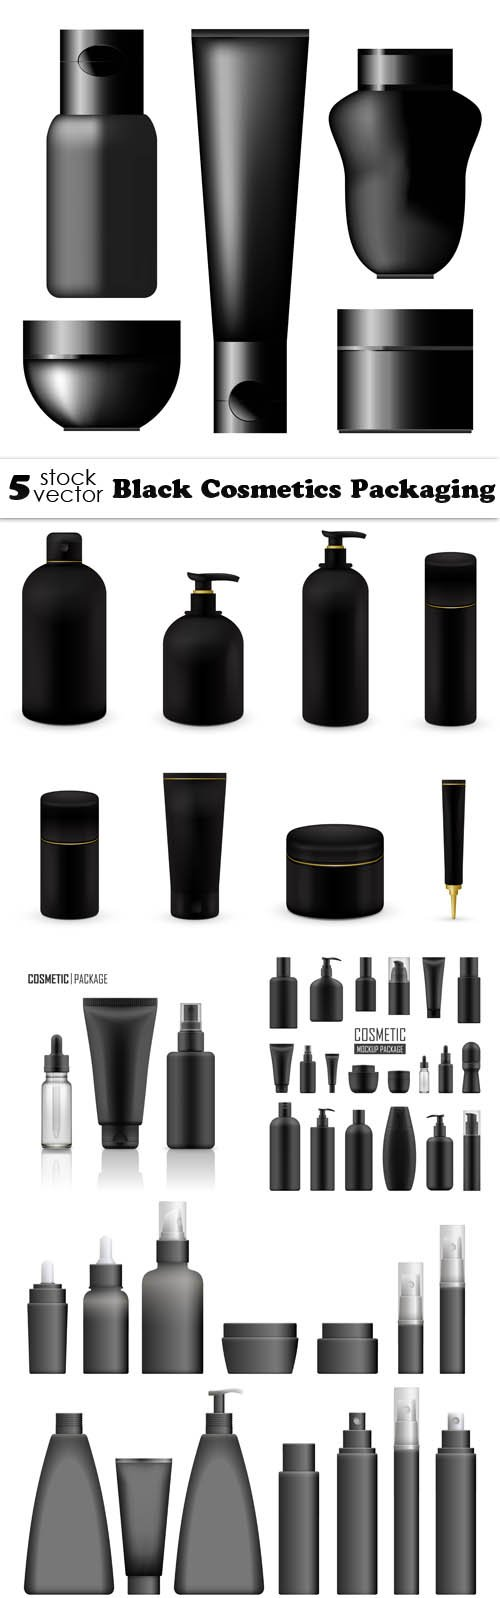 Vectors - Black Cosmetics Packaging